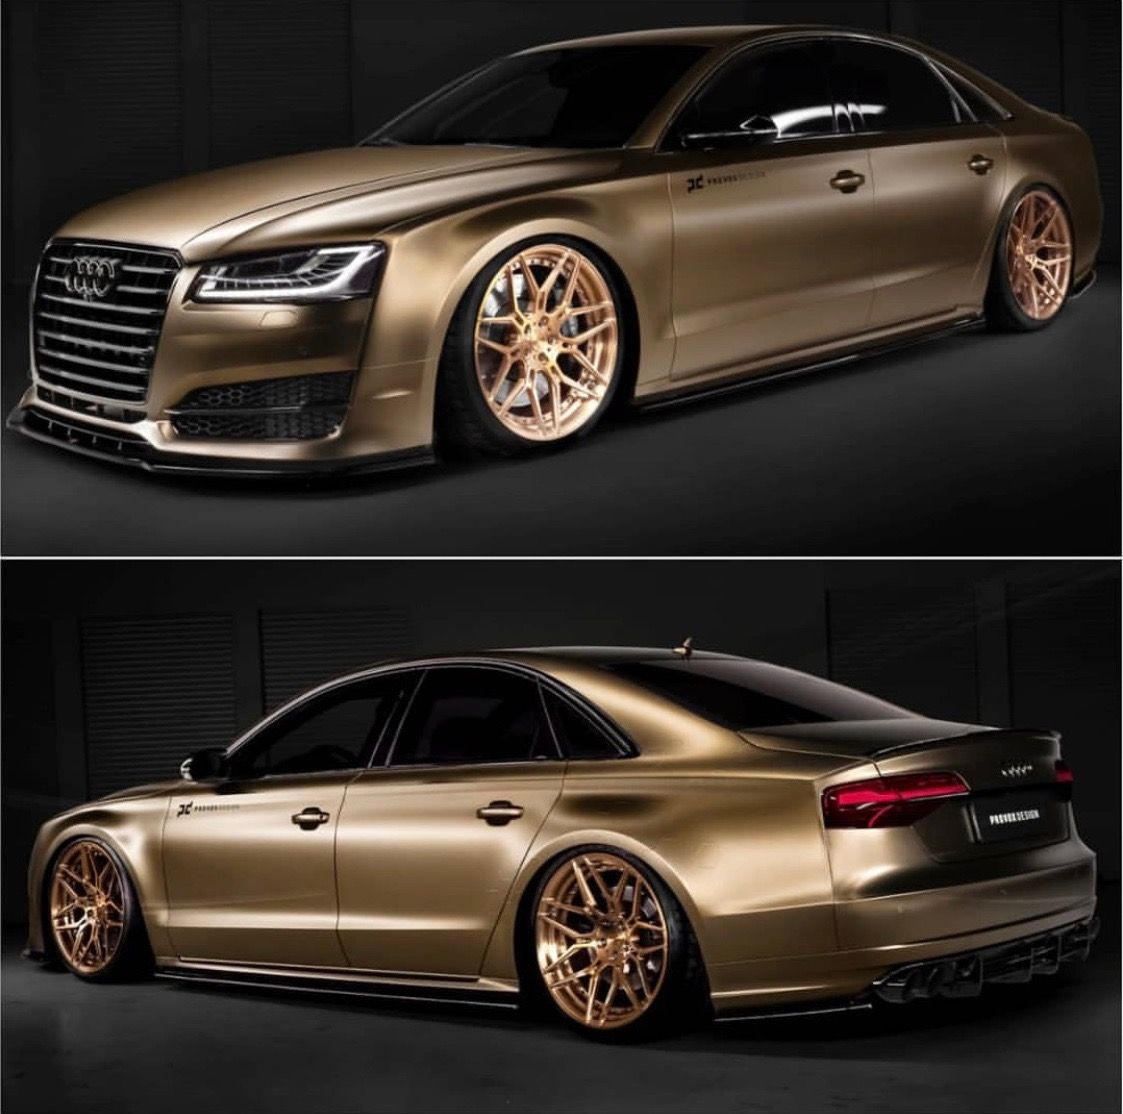 Audi S8 Goals Image By Fort Law Ventures